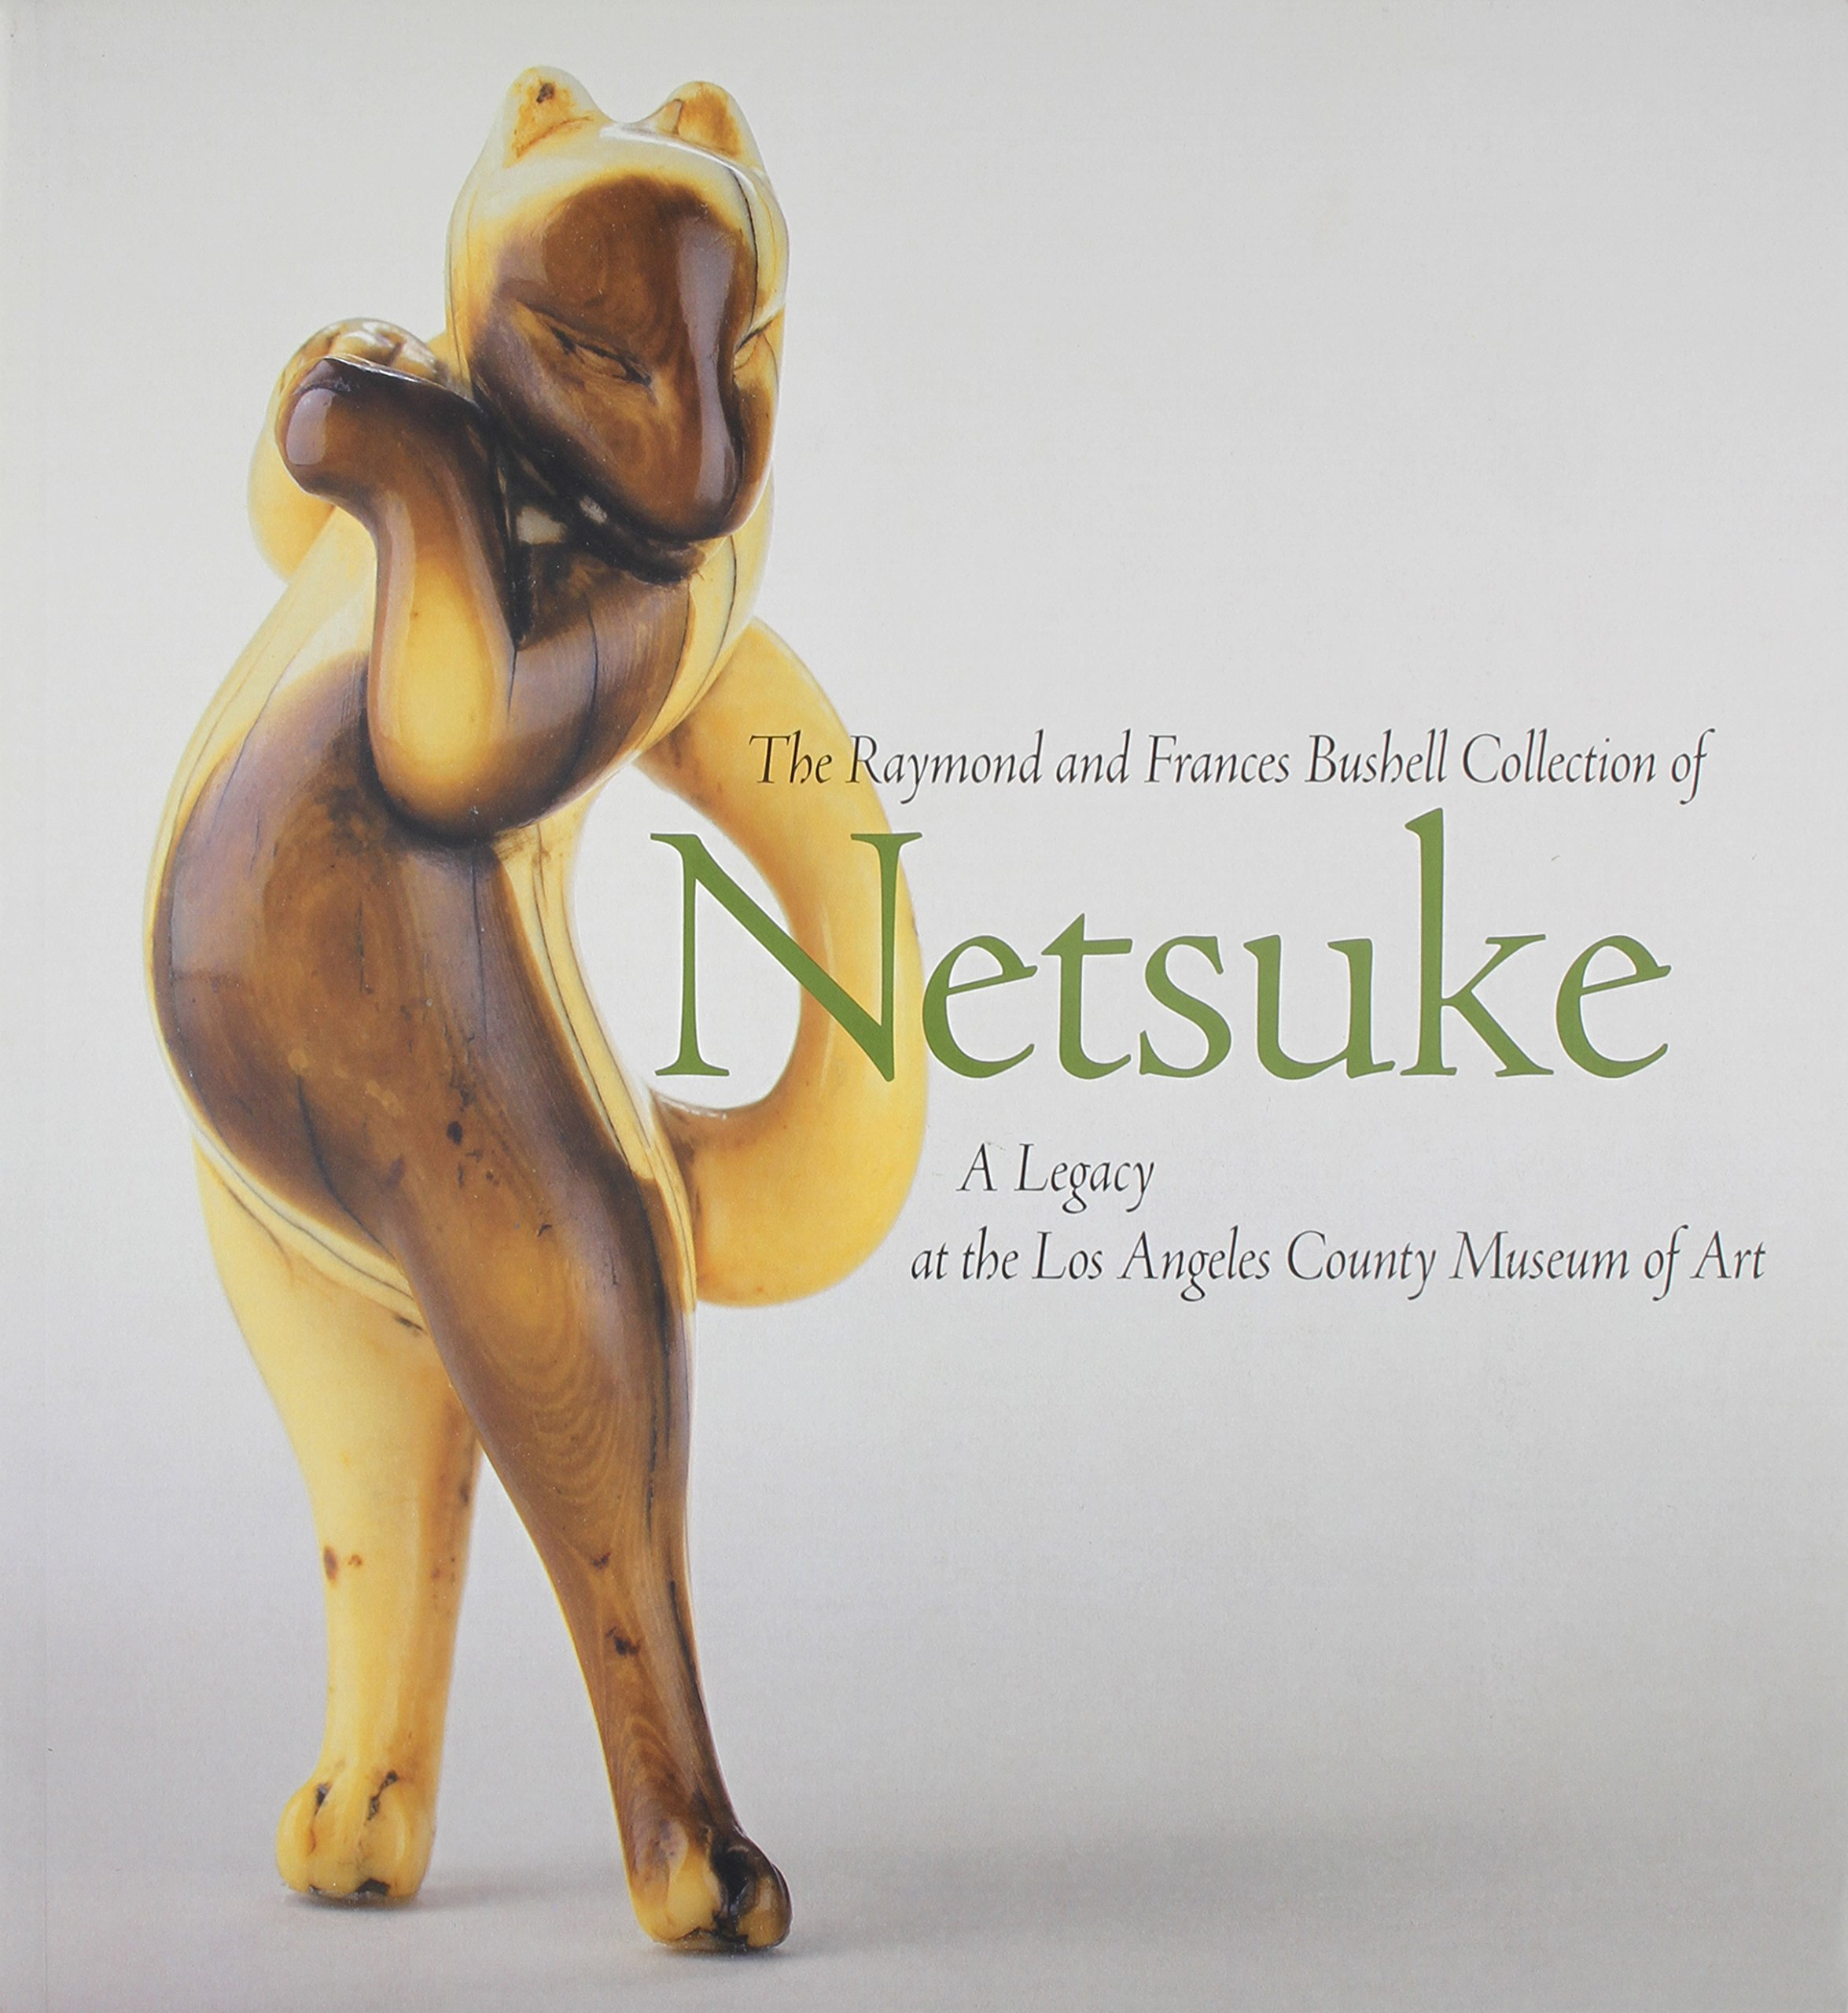 The Raymond and Frances Bushell Collection of Netsuke: A Legacy at the Los Angeles County Museum of Art